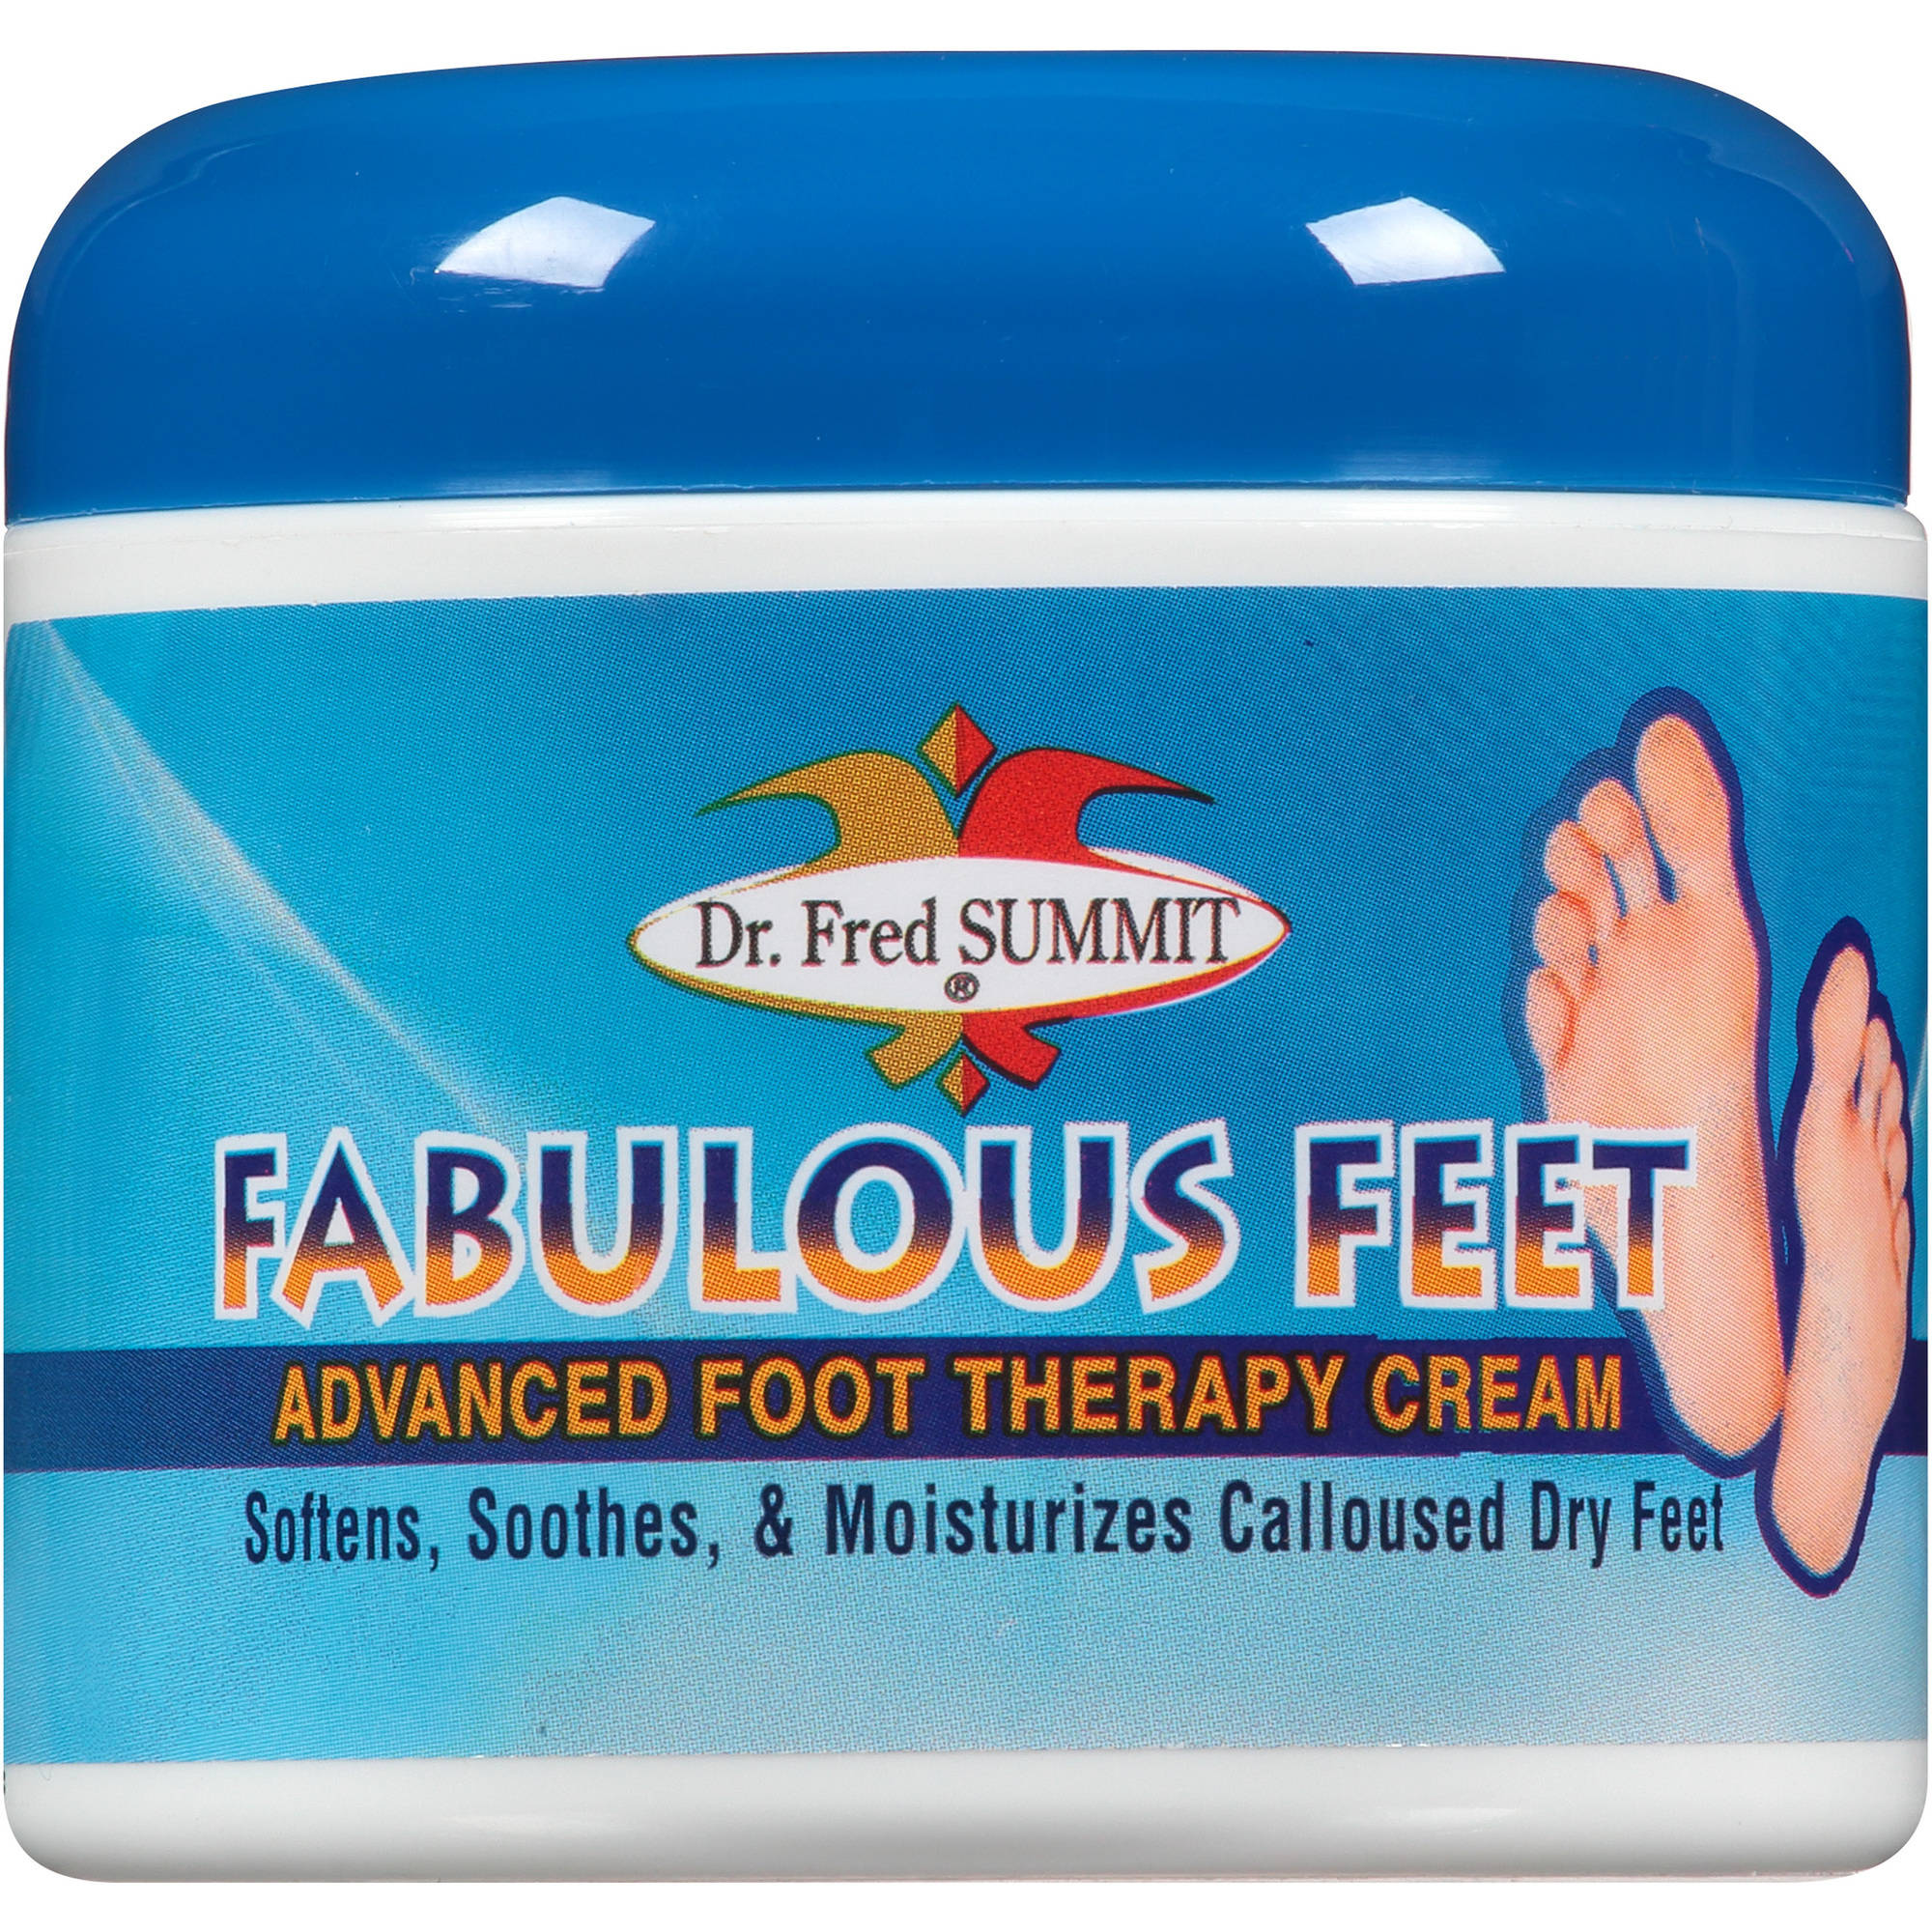 Dr. Fred Summit Fabulous Feet Advanced Foot Therapy Cream, 4 oz ...